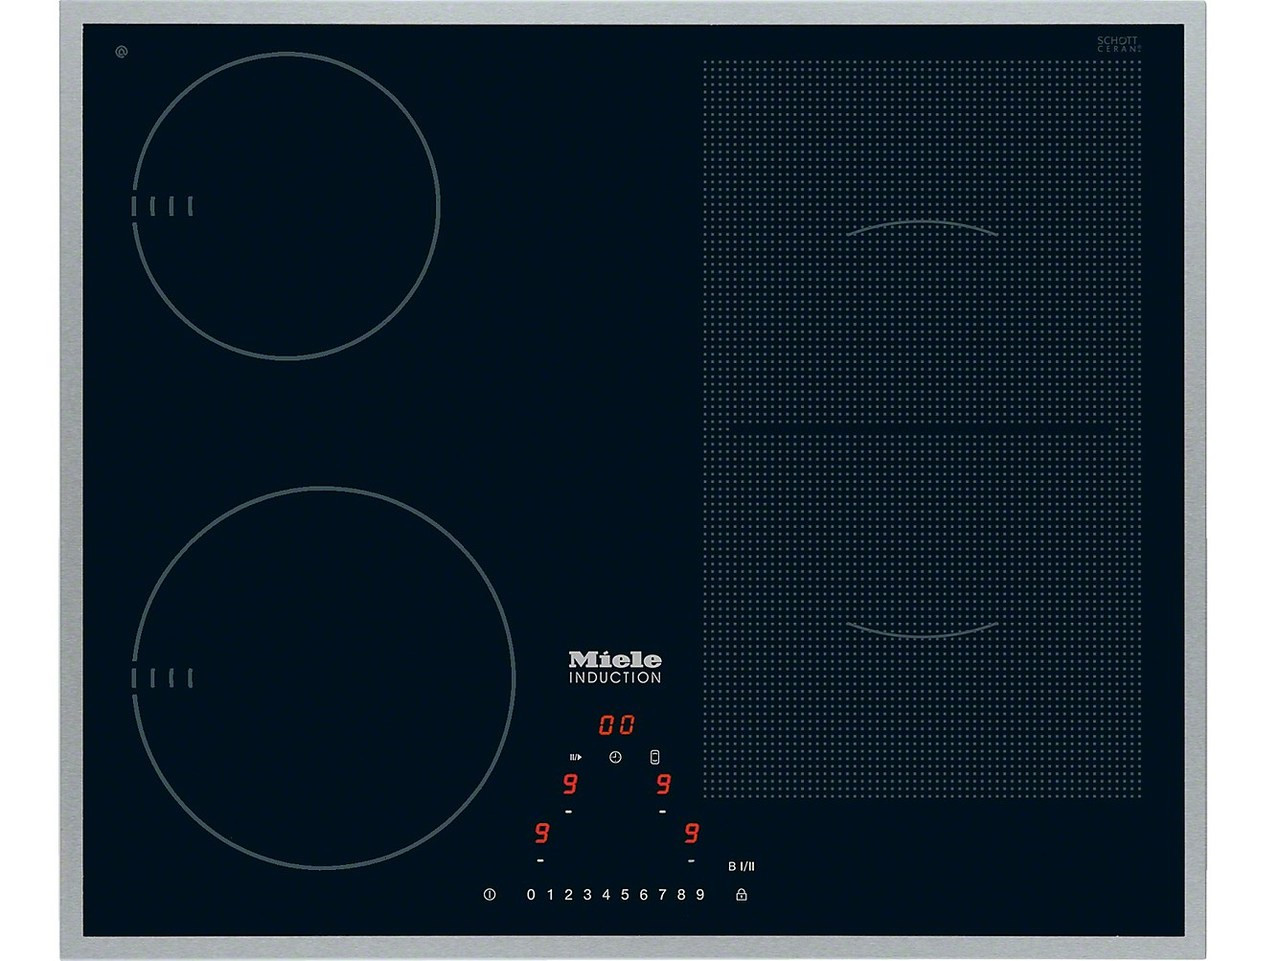 miele 60cm induction cooktop with powerflex zone km6304. Black Bedroom Furniture Sets. Home Design Ideas